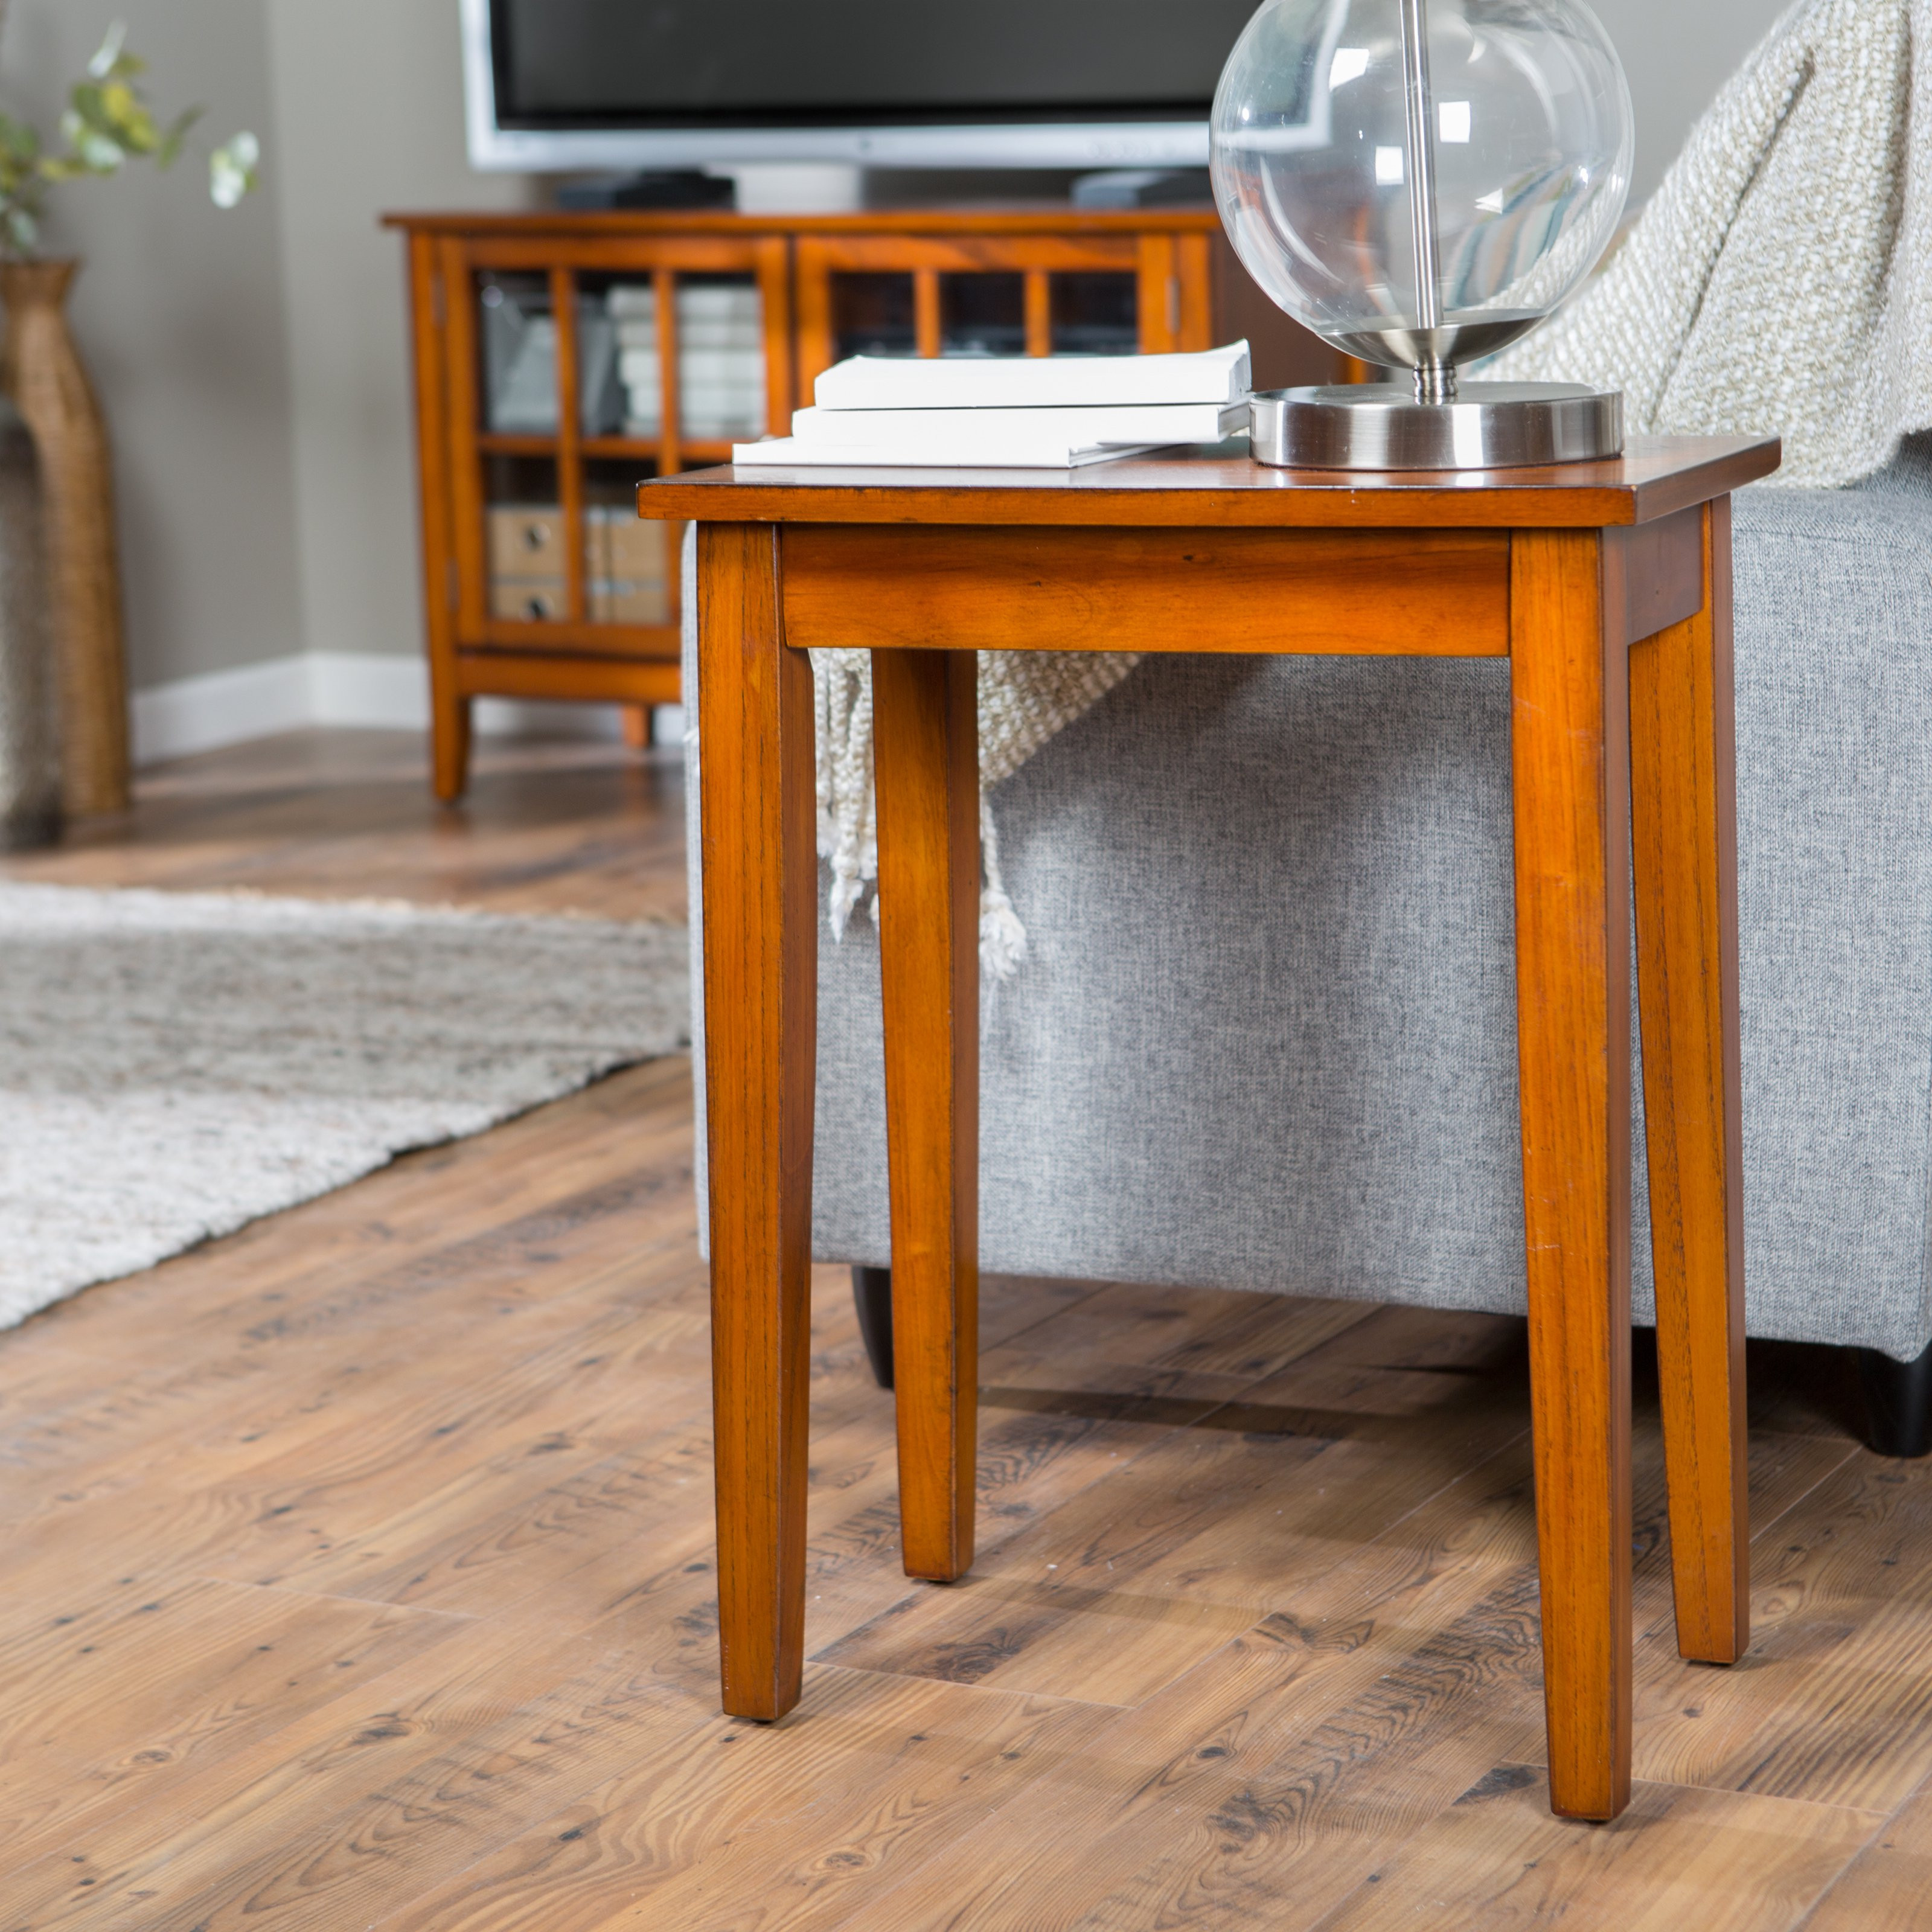 accent tables aharney furniture end unique narrow living room crystal table lamps with hanging crystals gas dryers folding coffee target holiday tablecloth sofa console side